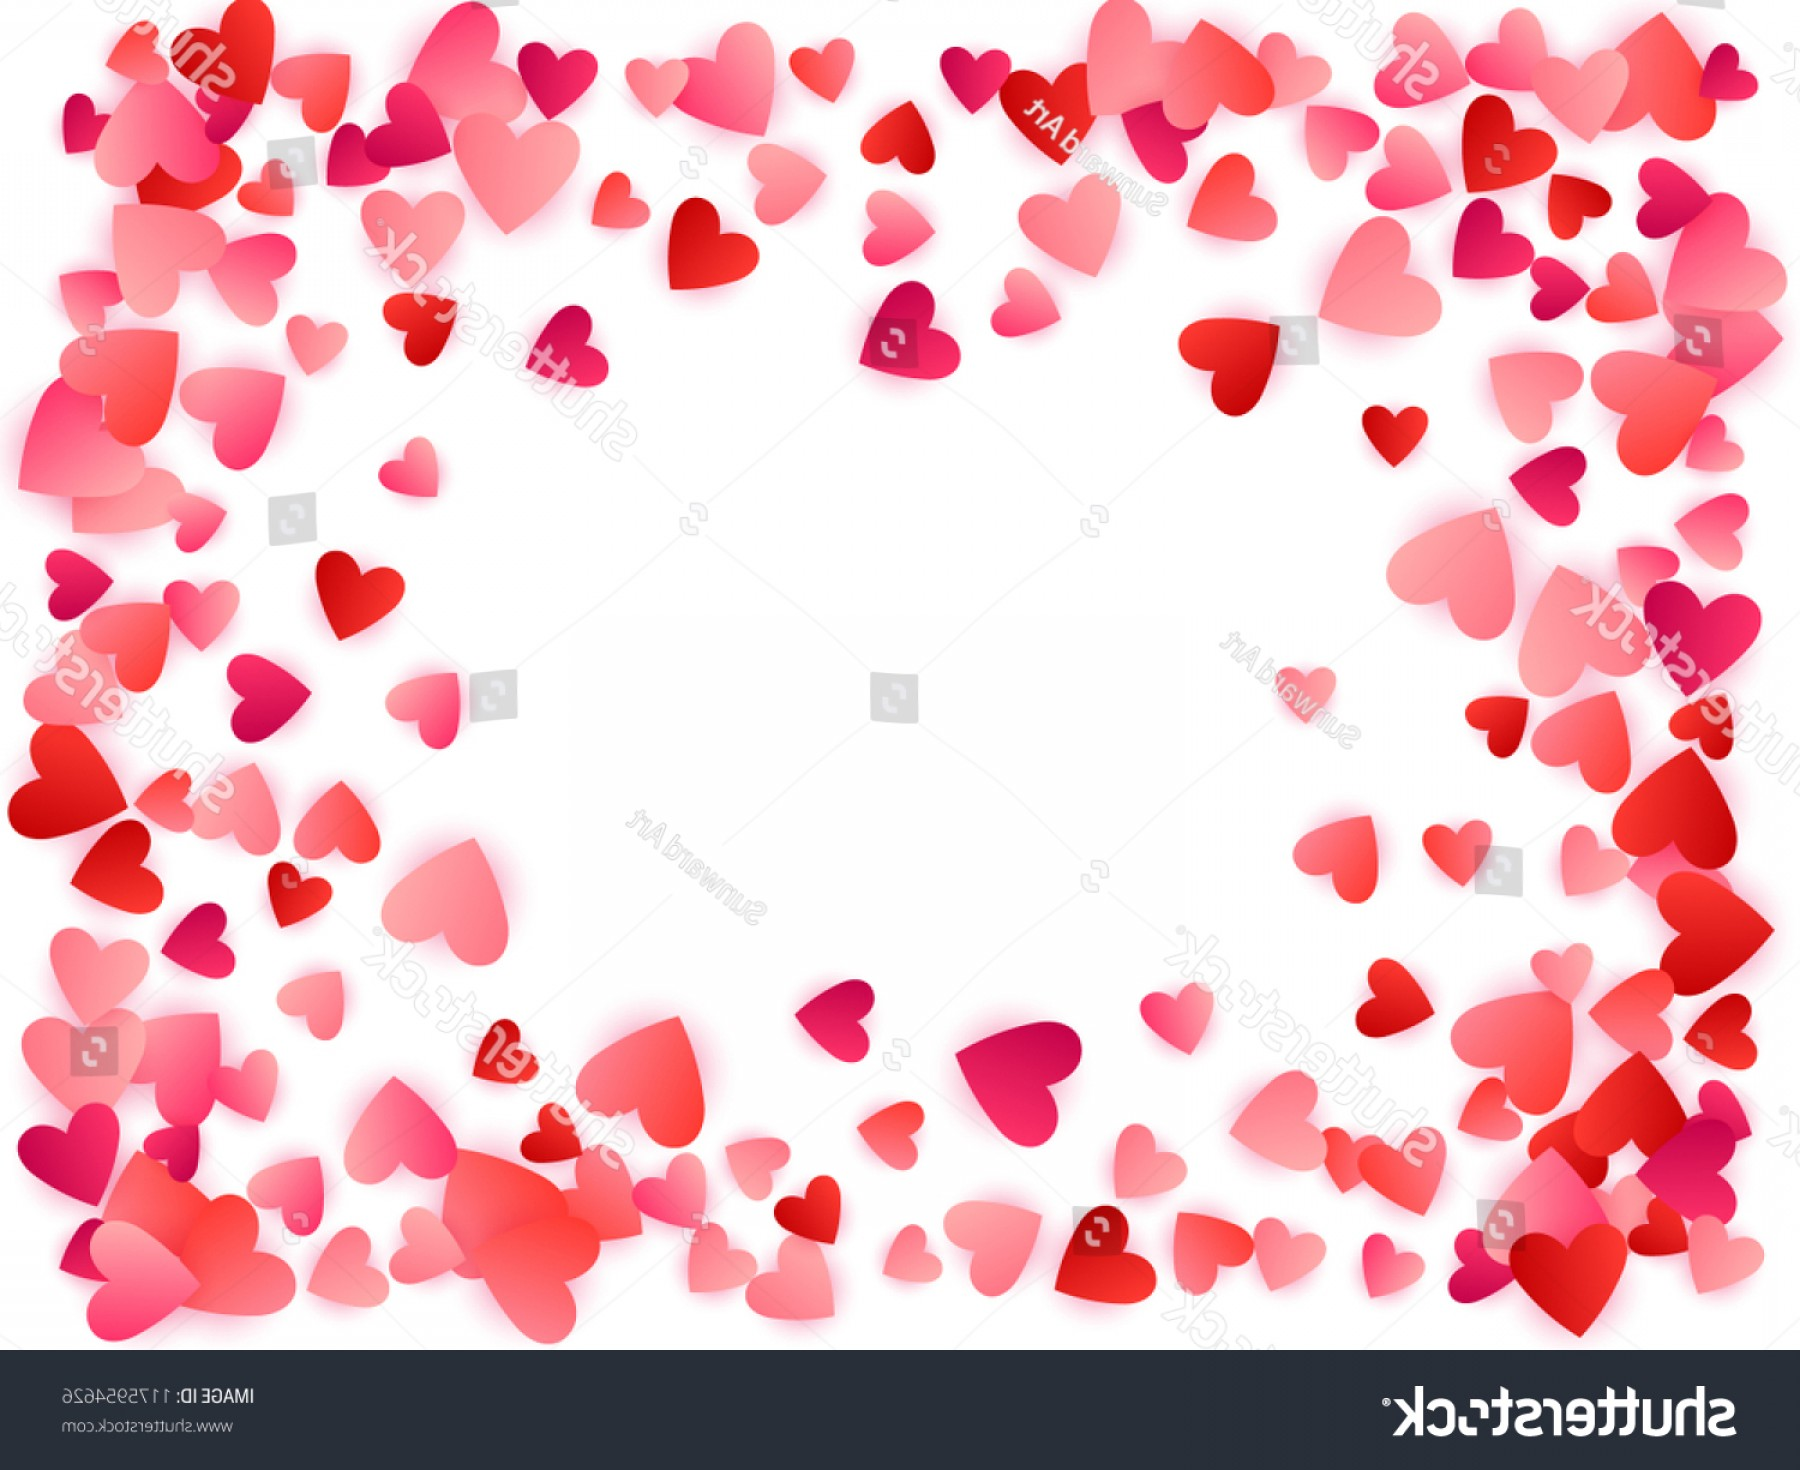 Cool Vector Hearts Pattern Symbol Pattern: Red Flying Hearts Bright Love Passion